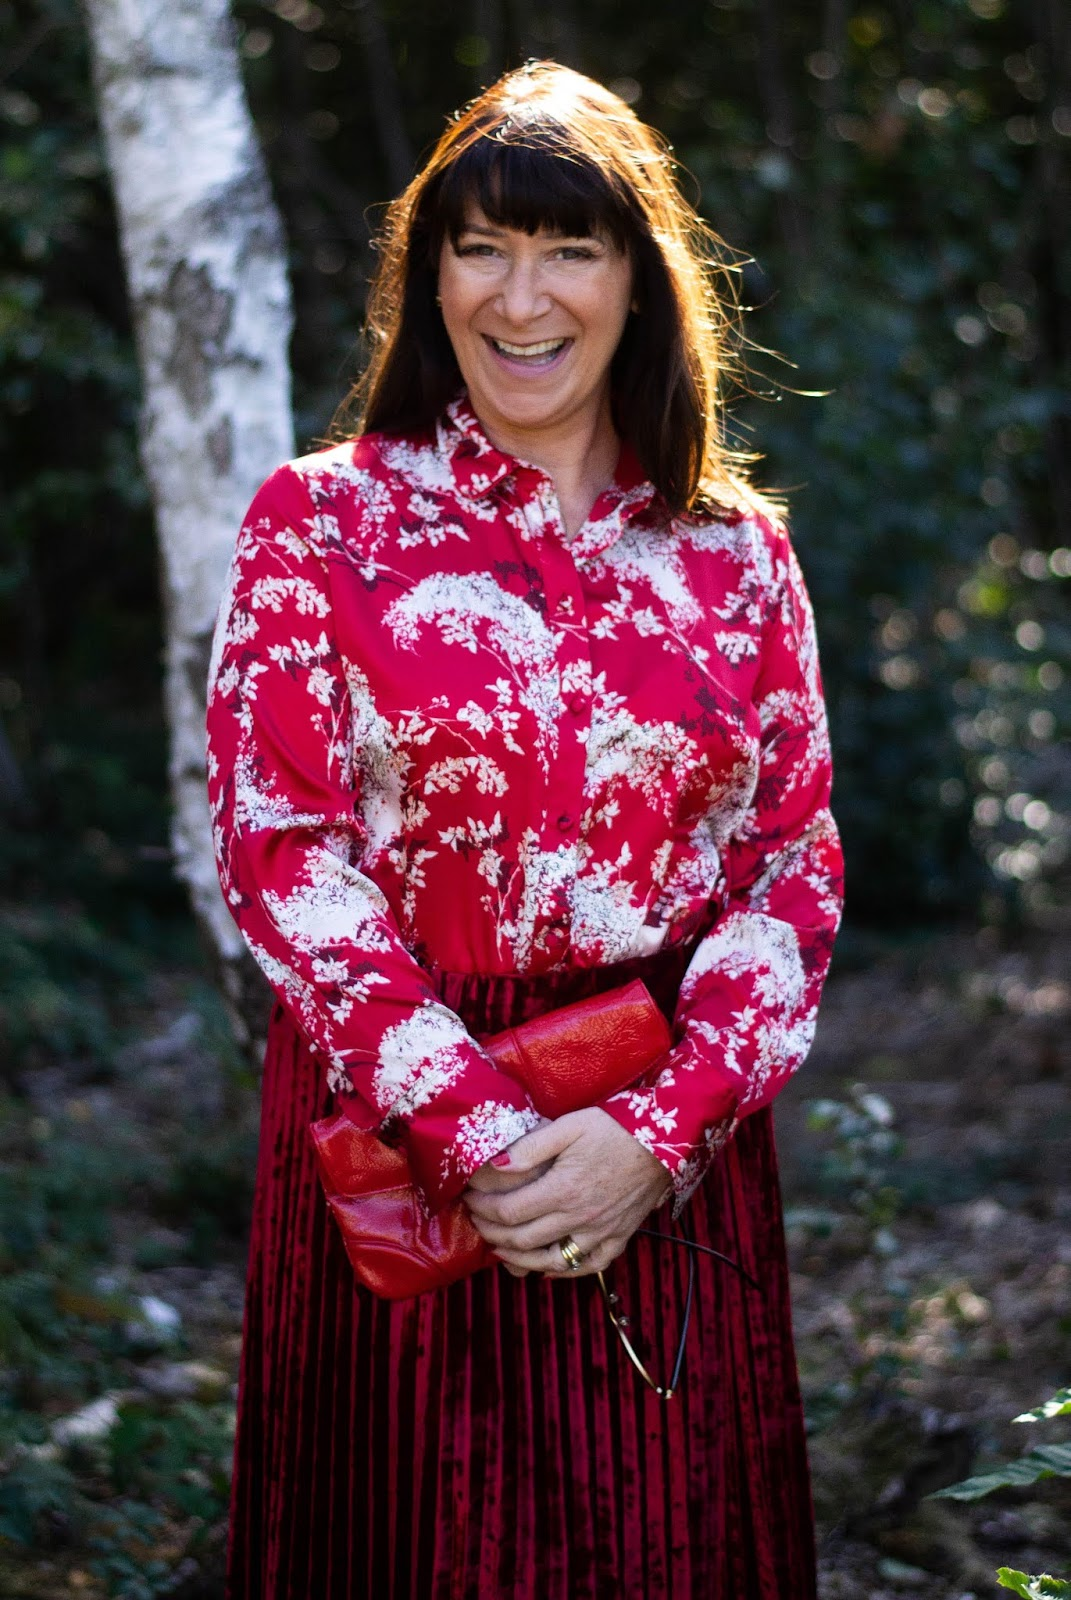 Showing one look with a red and white blouse, Jacqui Berry from fashion blog Mummabstylish